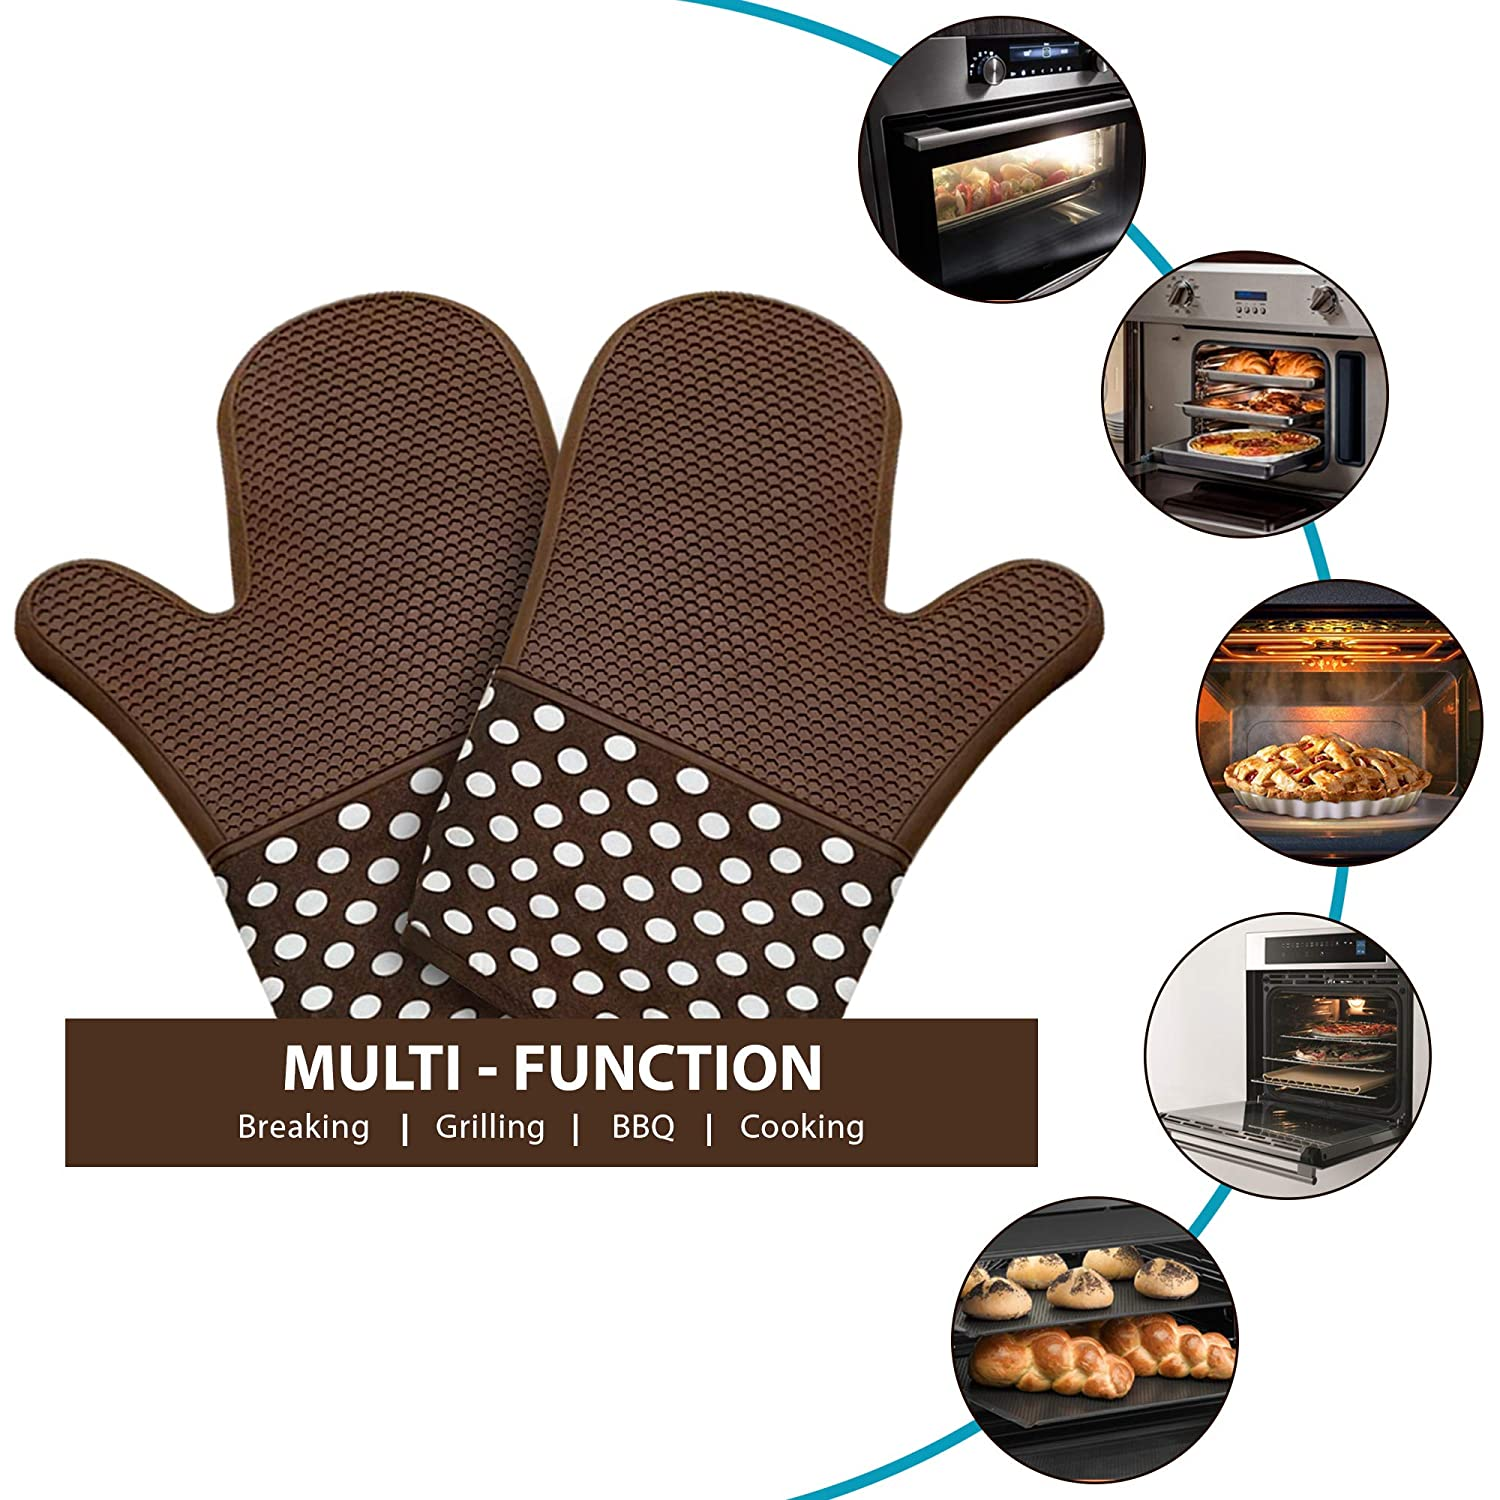 2 Pack Brown Coloured Oven Mitts with Non Slip Silicone Grip - Heat Resistant Pot Holder Gloves for Cooking and Baking